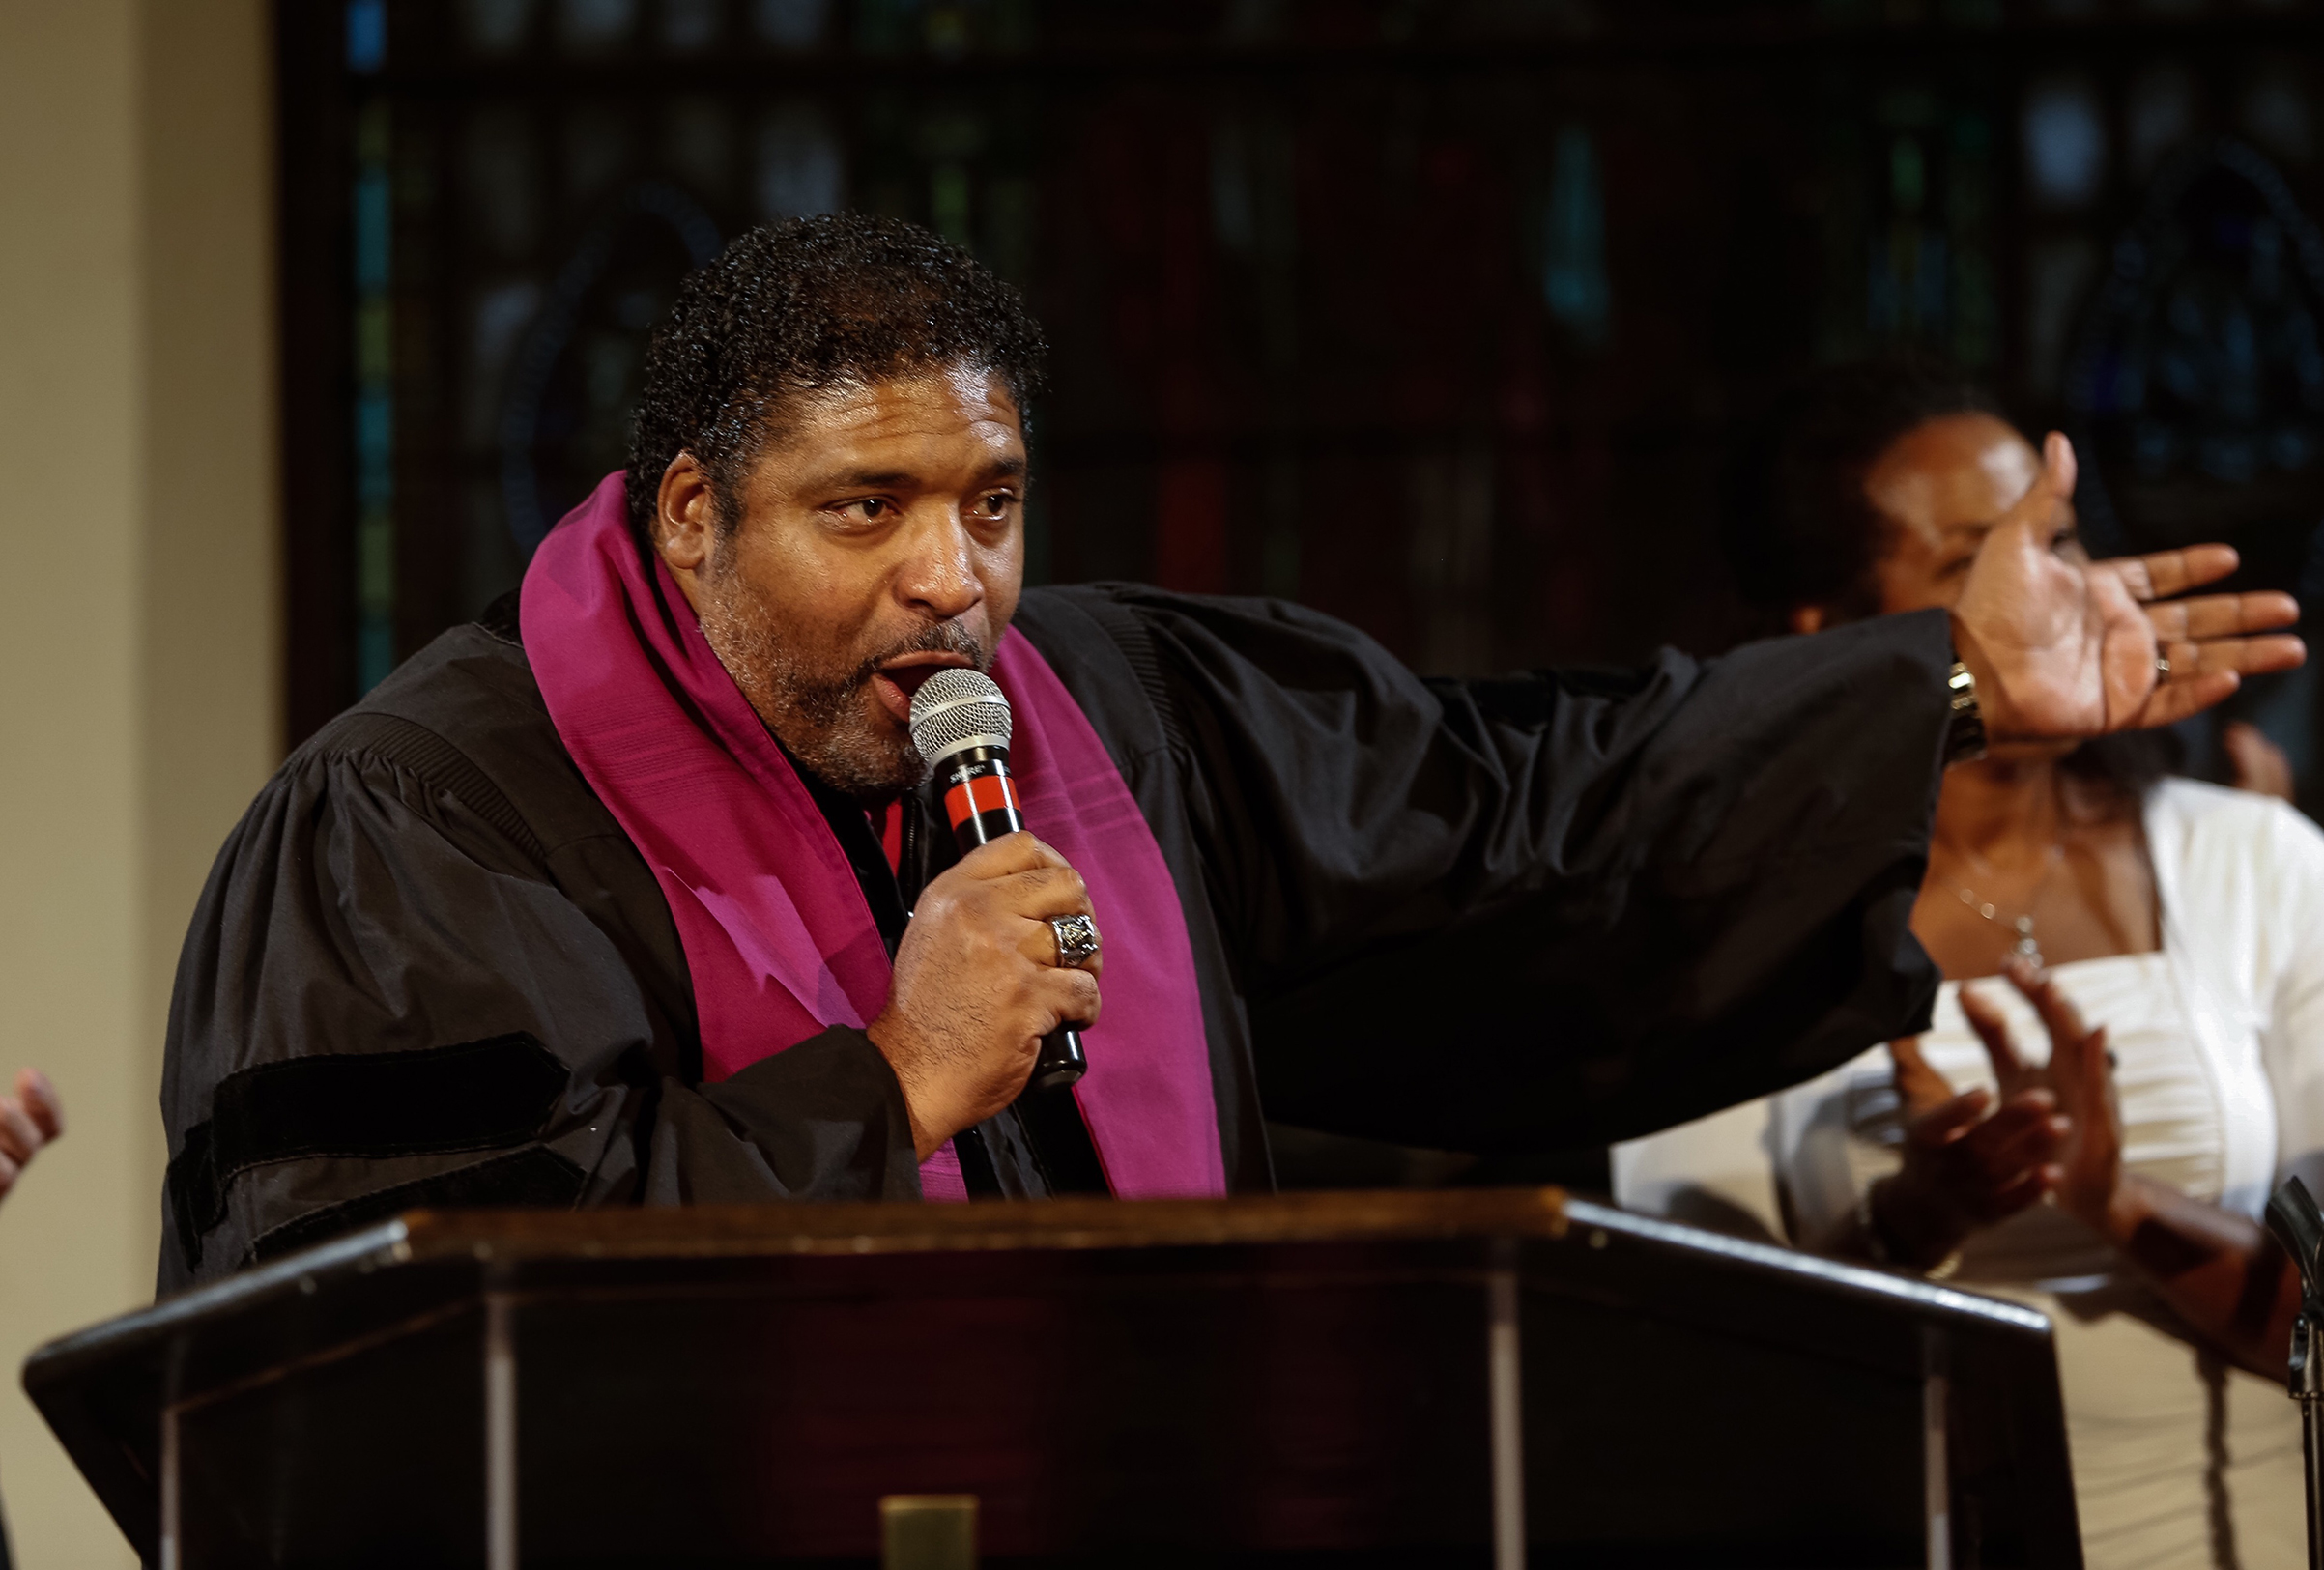 Reverend Dr. William J. Barber II speaks during a revival service to address moral public policies at Bethel AME Church in Boston on Aug. 1, 2016.